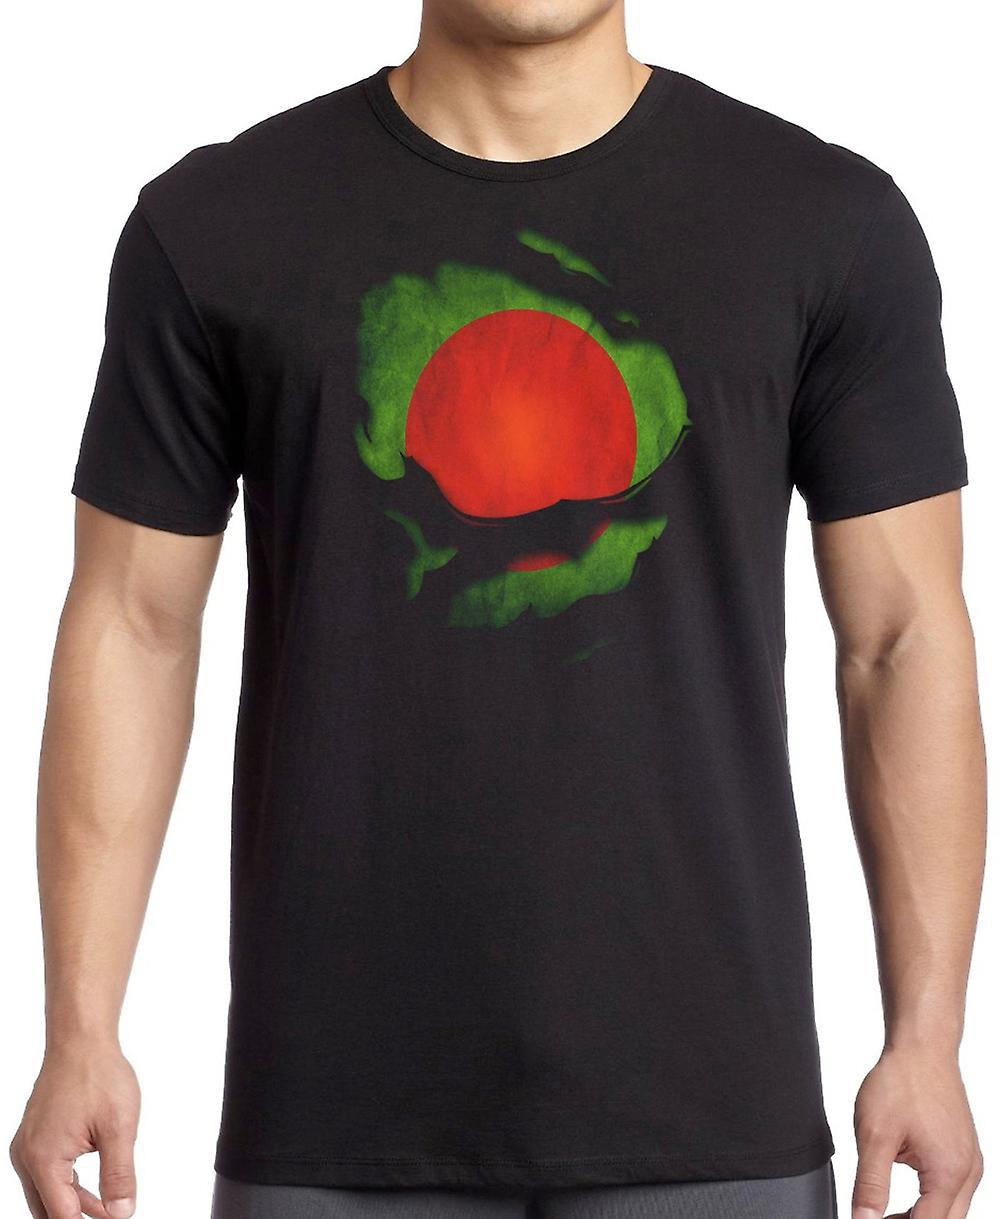 Bangladeshi Bangladesh Ripped Effect Under Shirt T Shirt